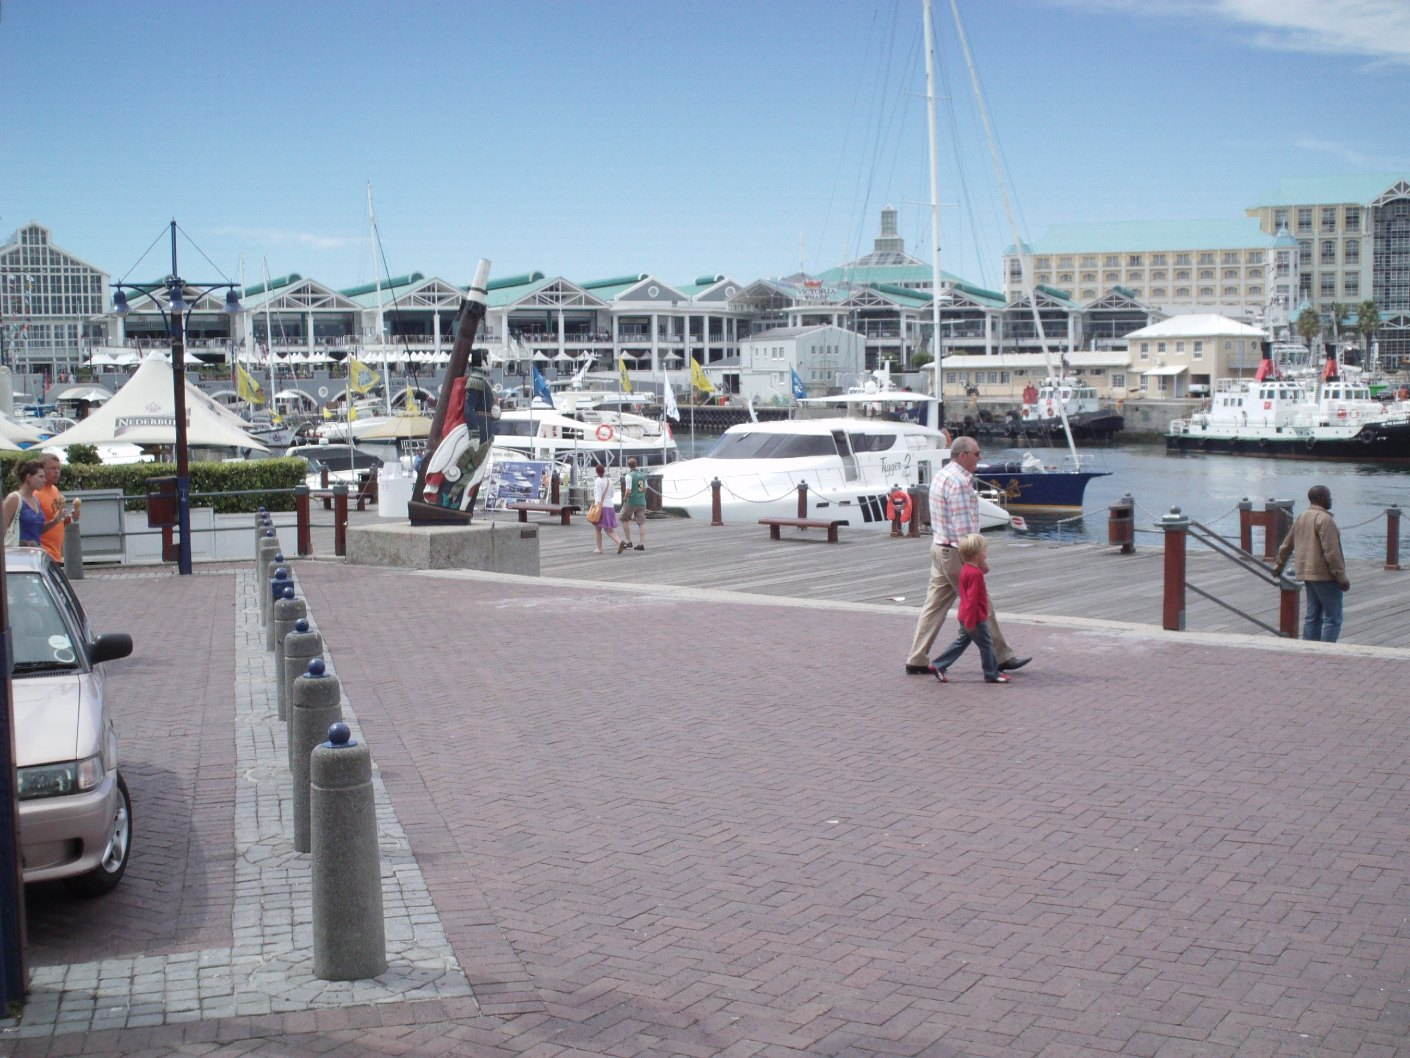 Victoria & Alfred Waterfront